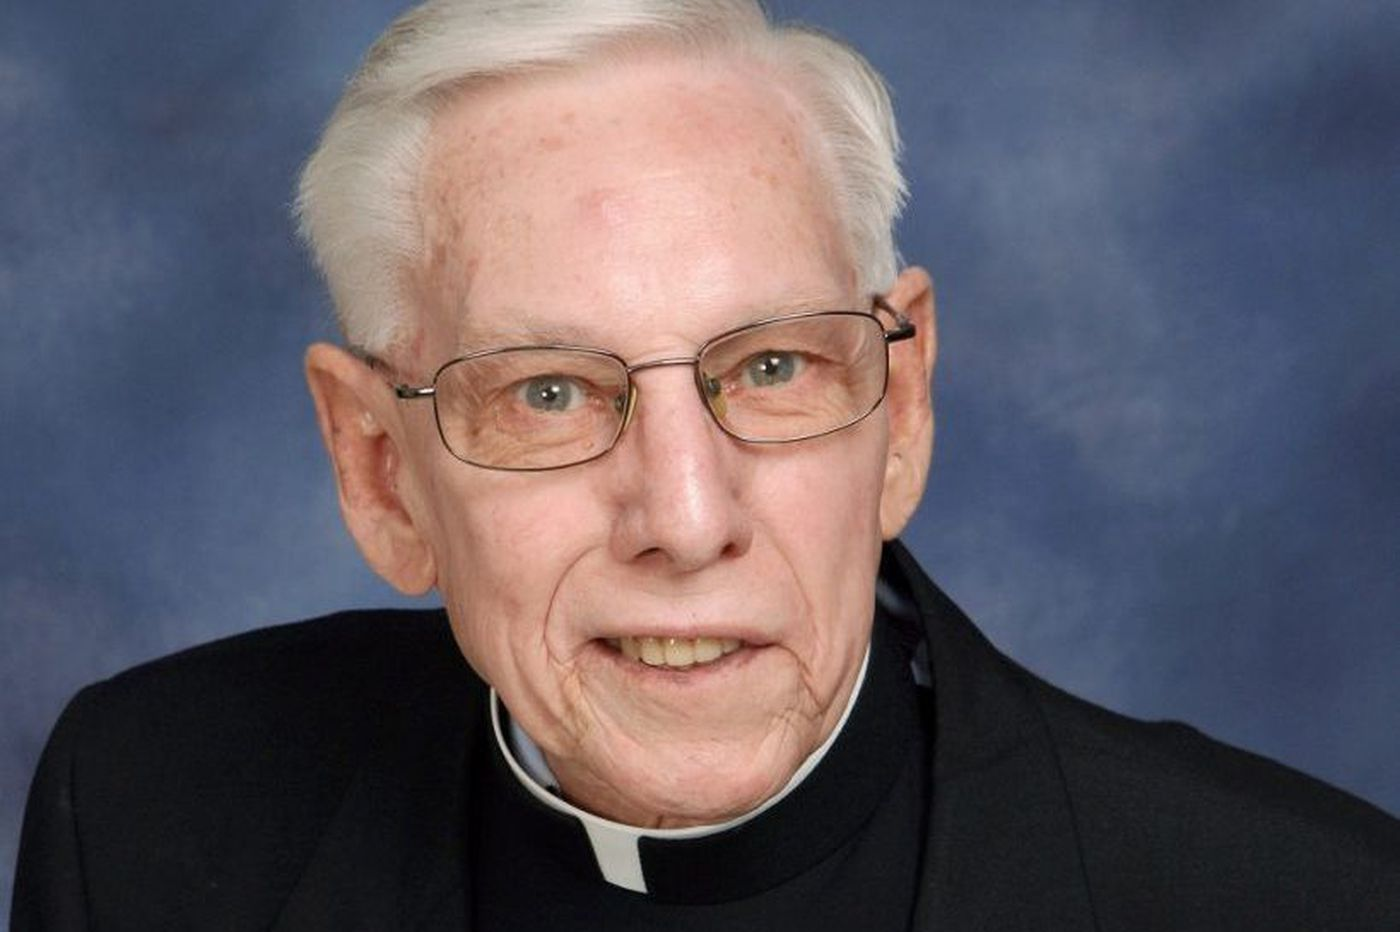 Monsignor who stole $500,000 for gambling, concert tickets headed to federal prison